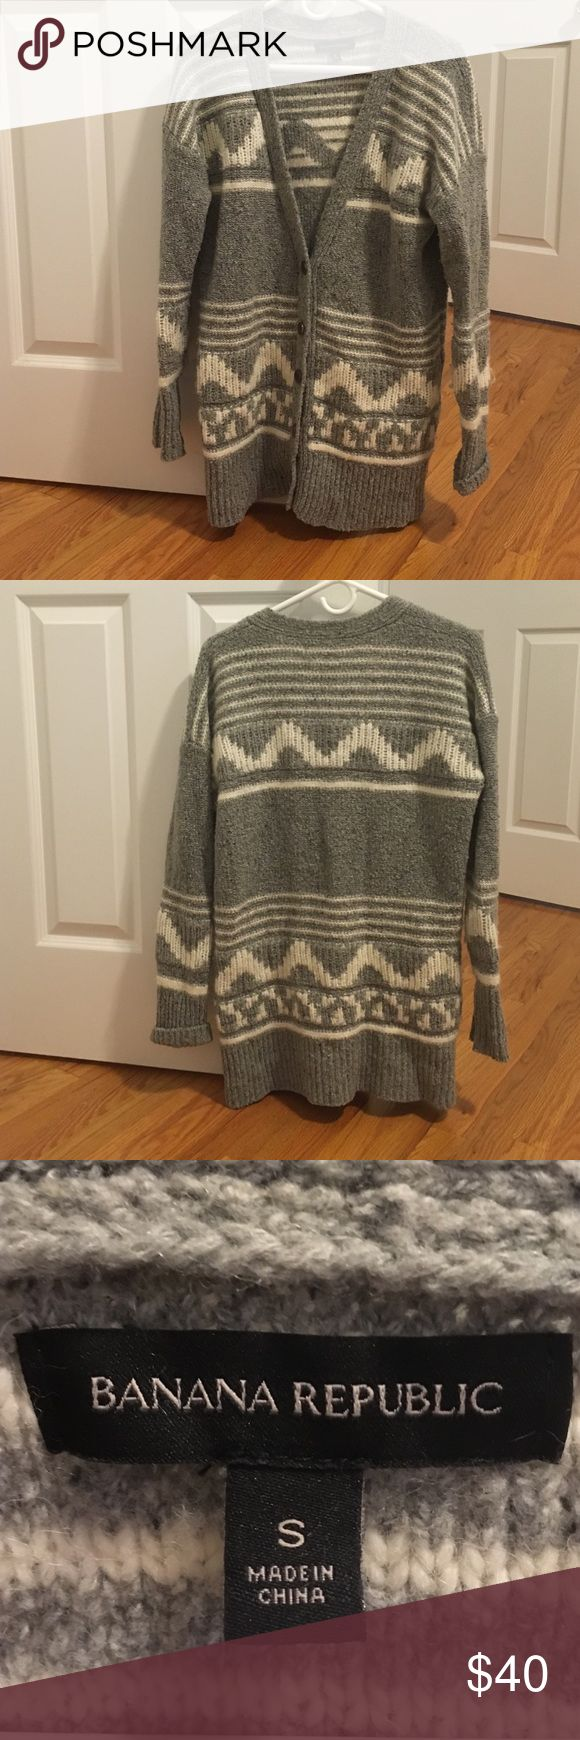 Banana republic oversized sweater Great condition. Oversized, great to wear with leggings! Banana Republic Sweaters